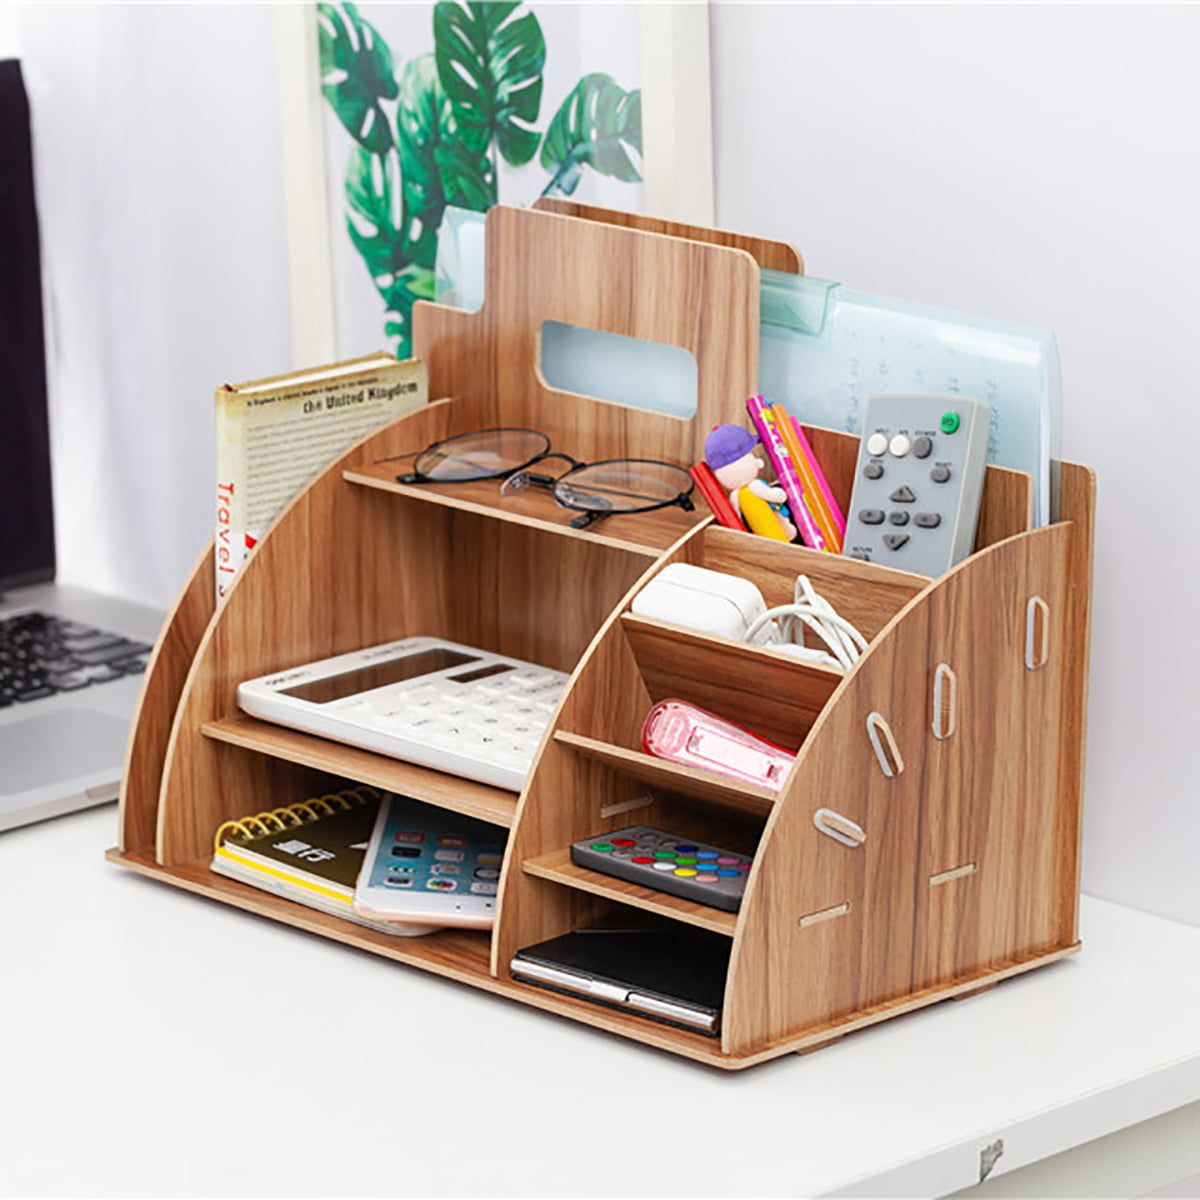 Wooden Desktop Organizer Office Supplies Storage Wooden Desk Organizer Home Office Supply Storage Rack Black Cherry Wood Color Walmart Com Walmart Com